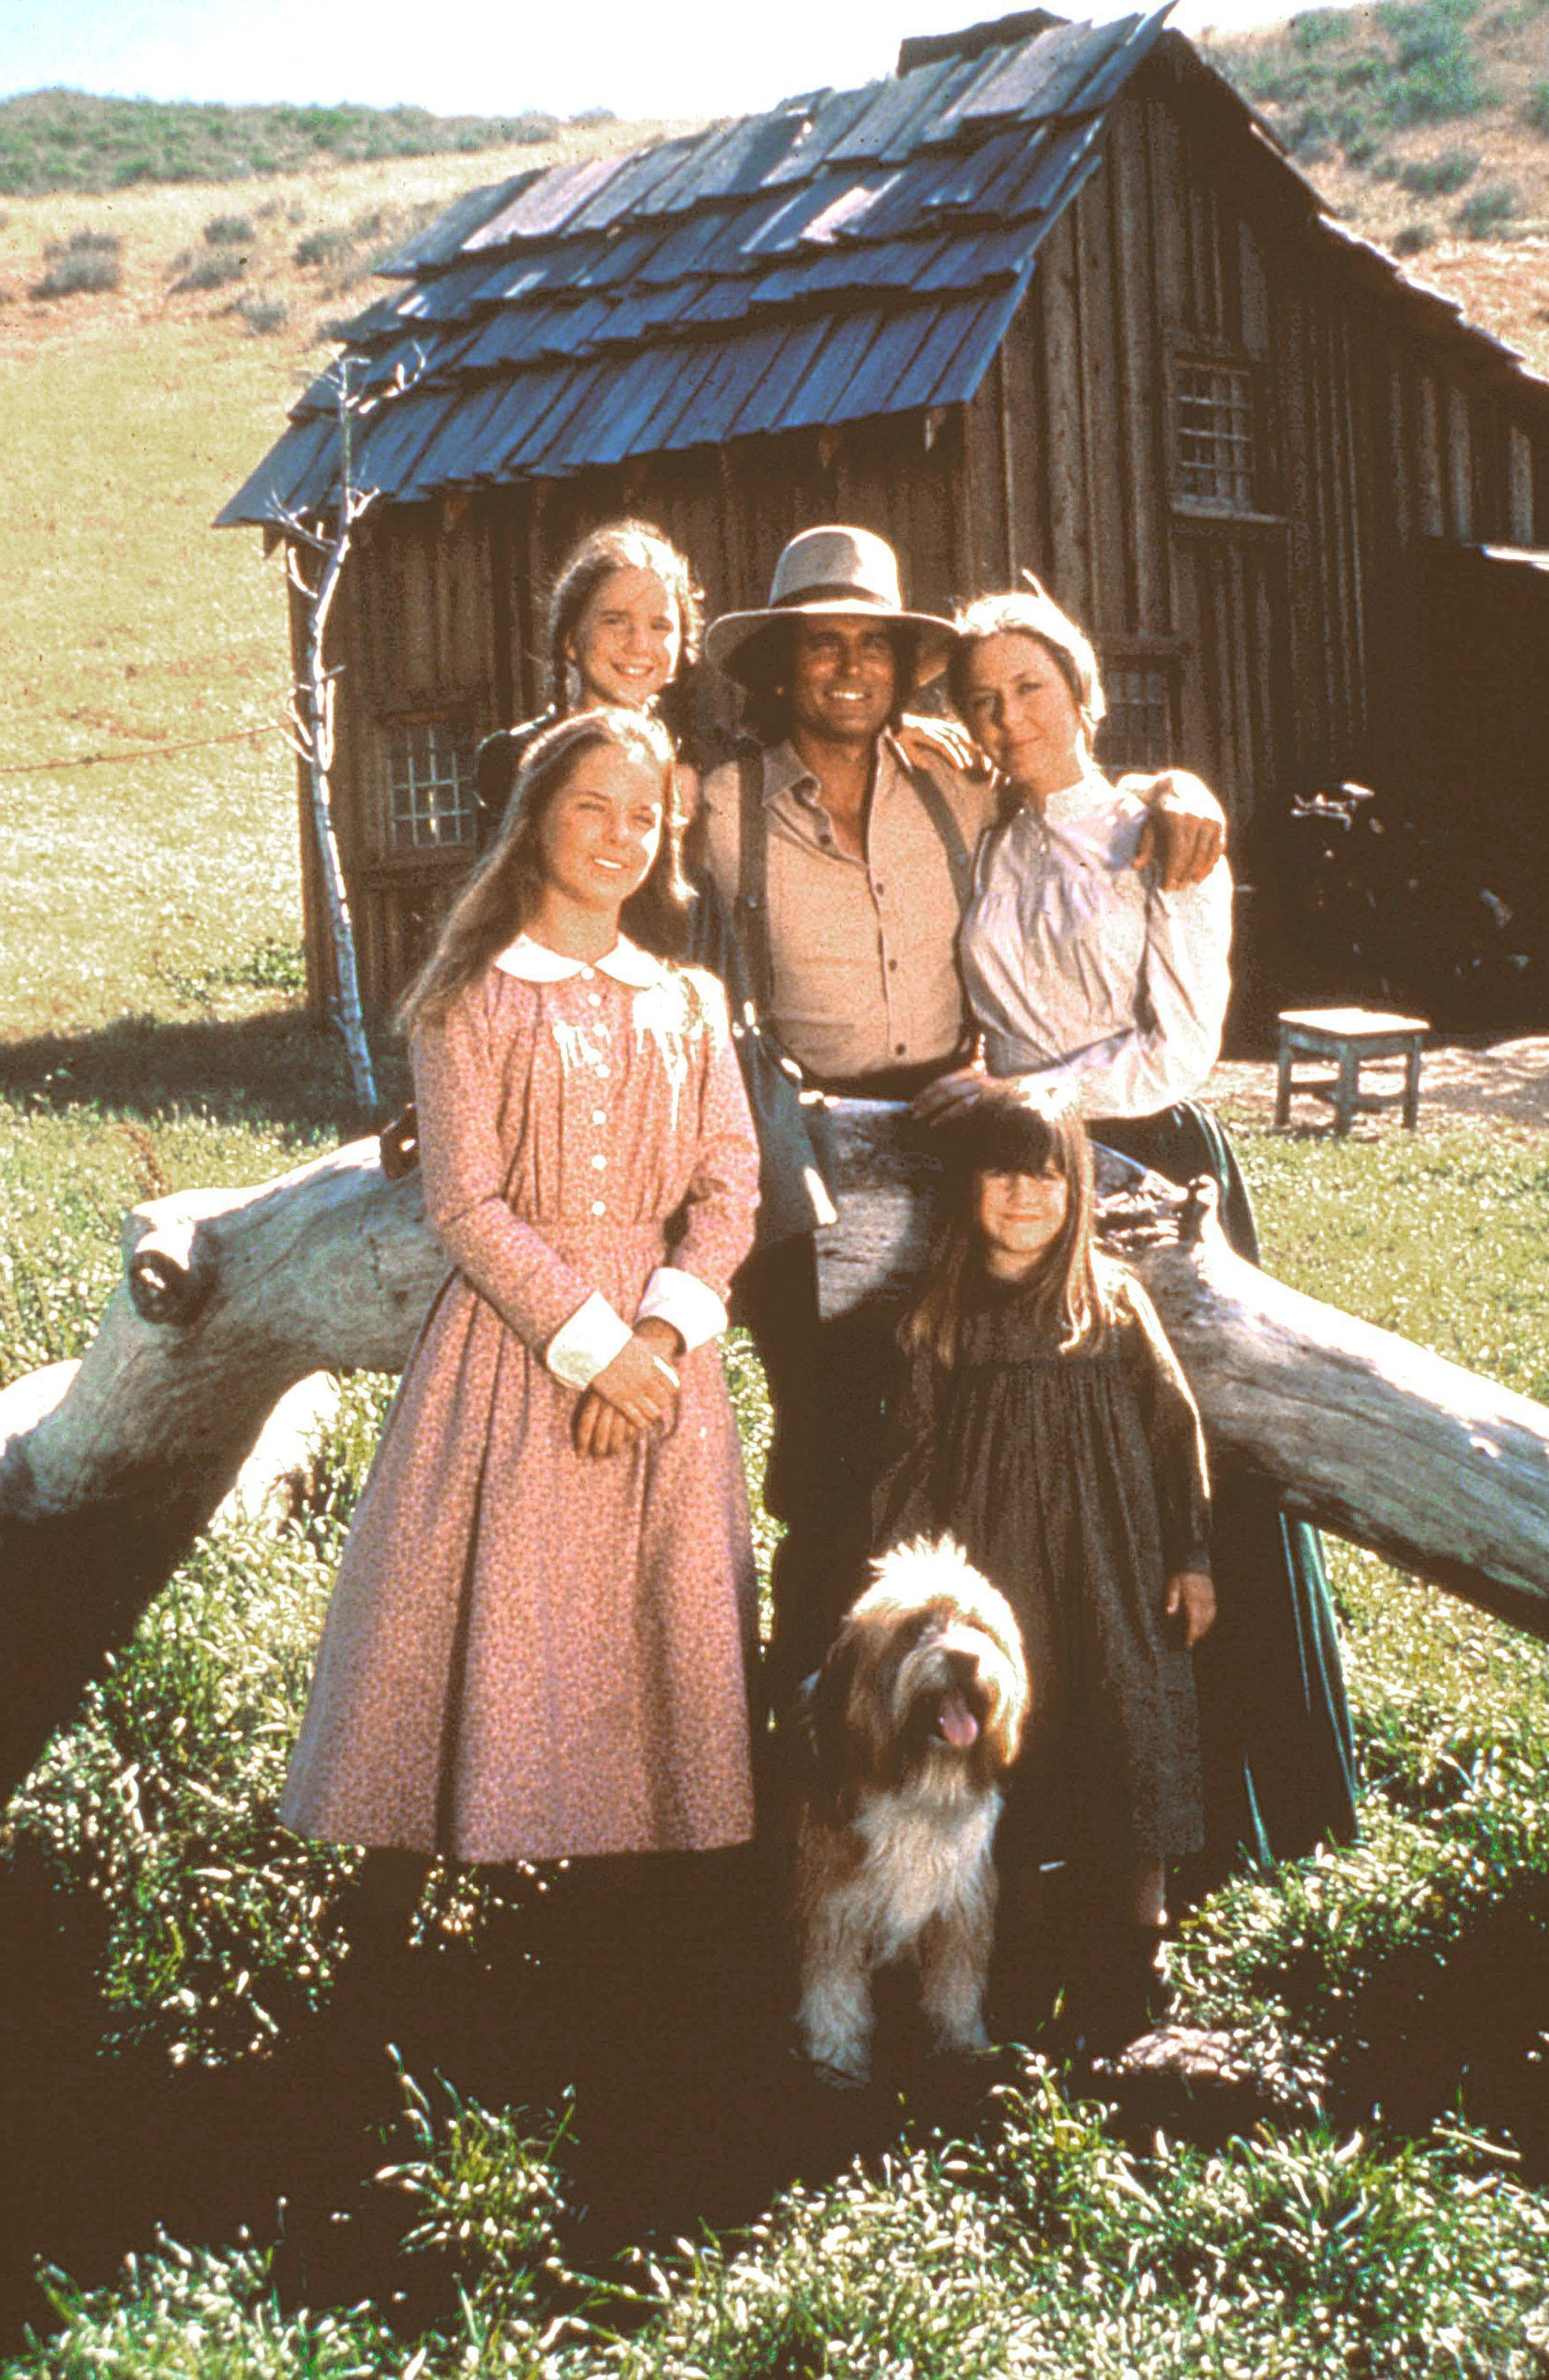 10 Things You Didn't Know About 'Little House On The Prairie' - Fame10